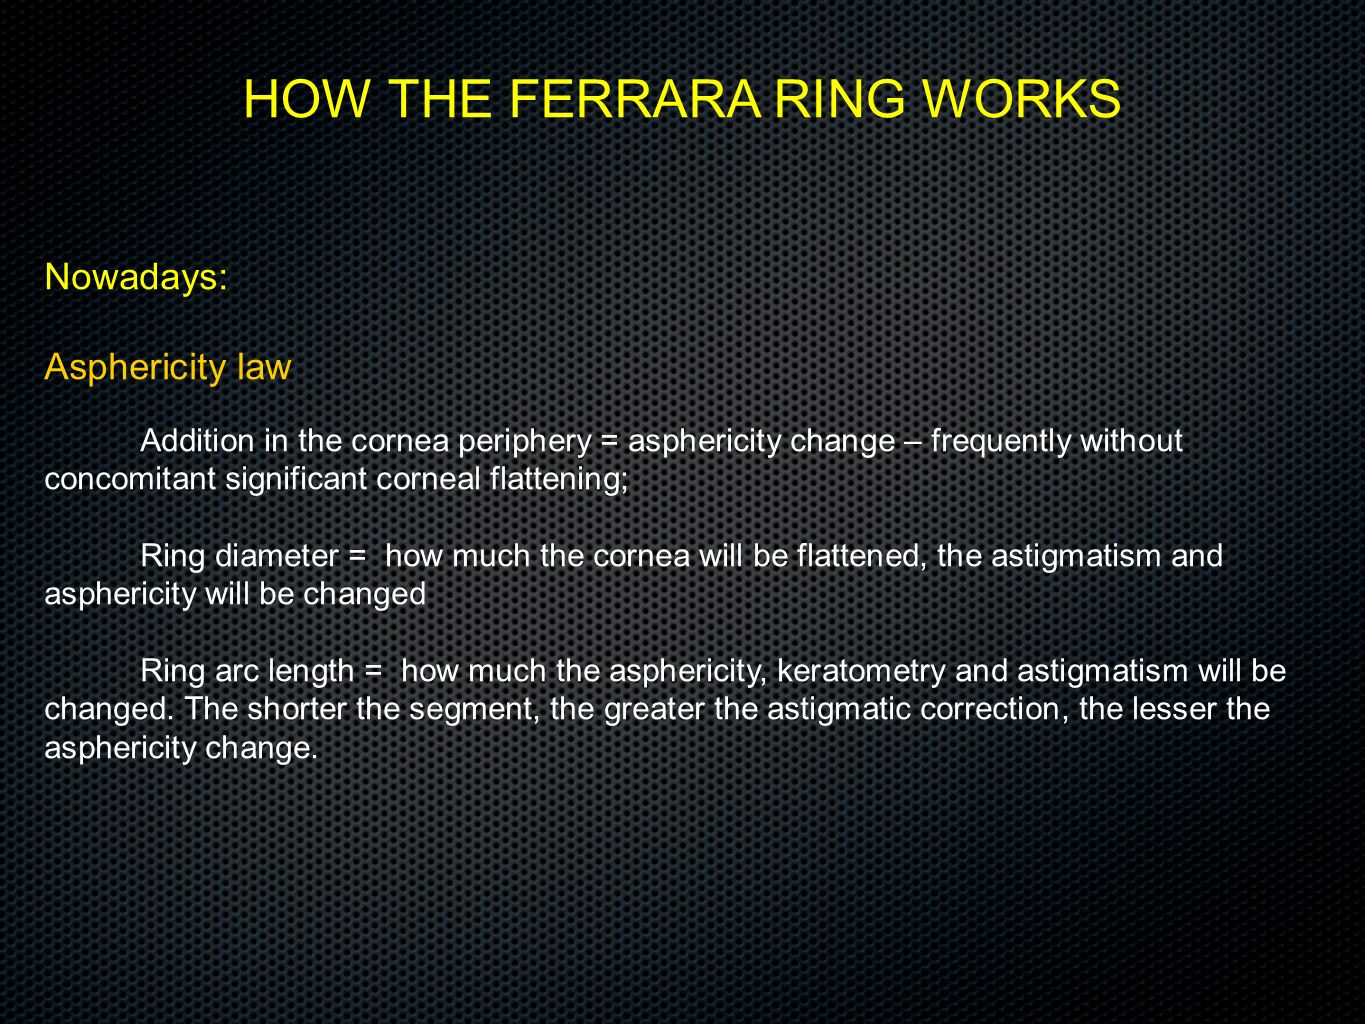 HOW THE FERRARA RING WORKS